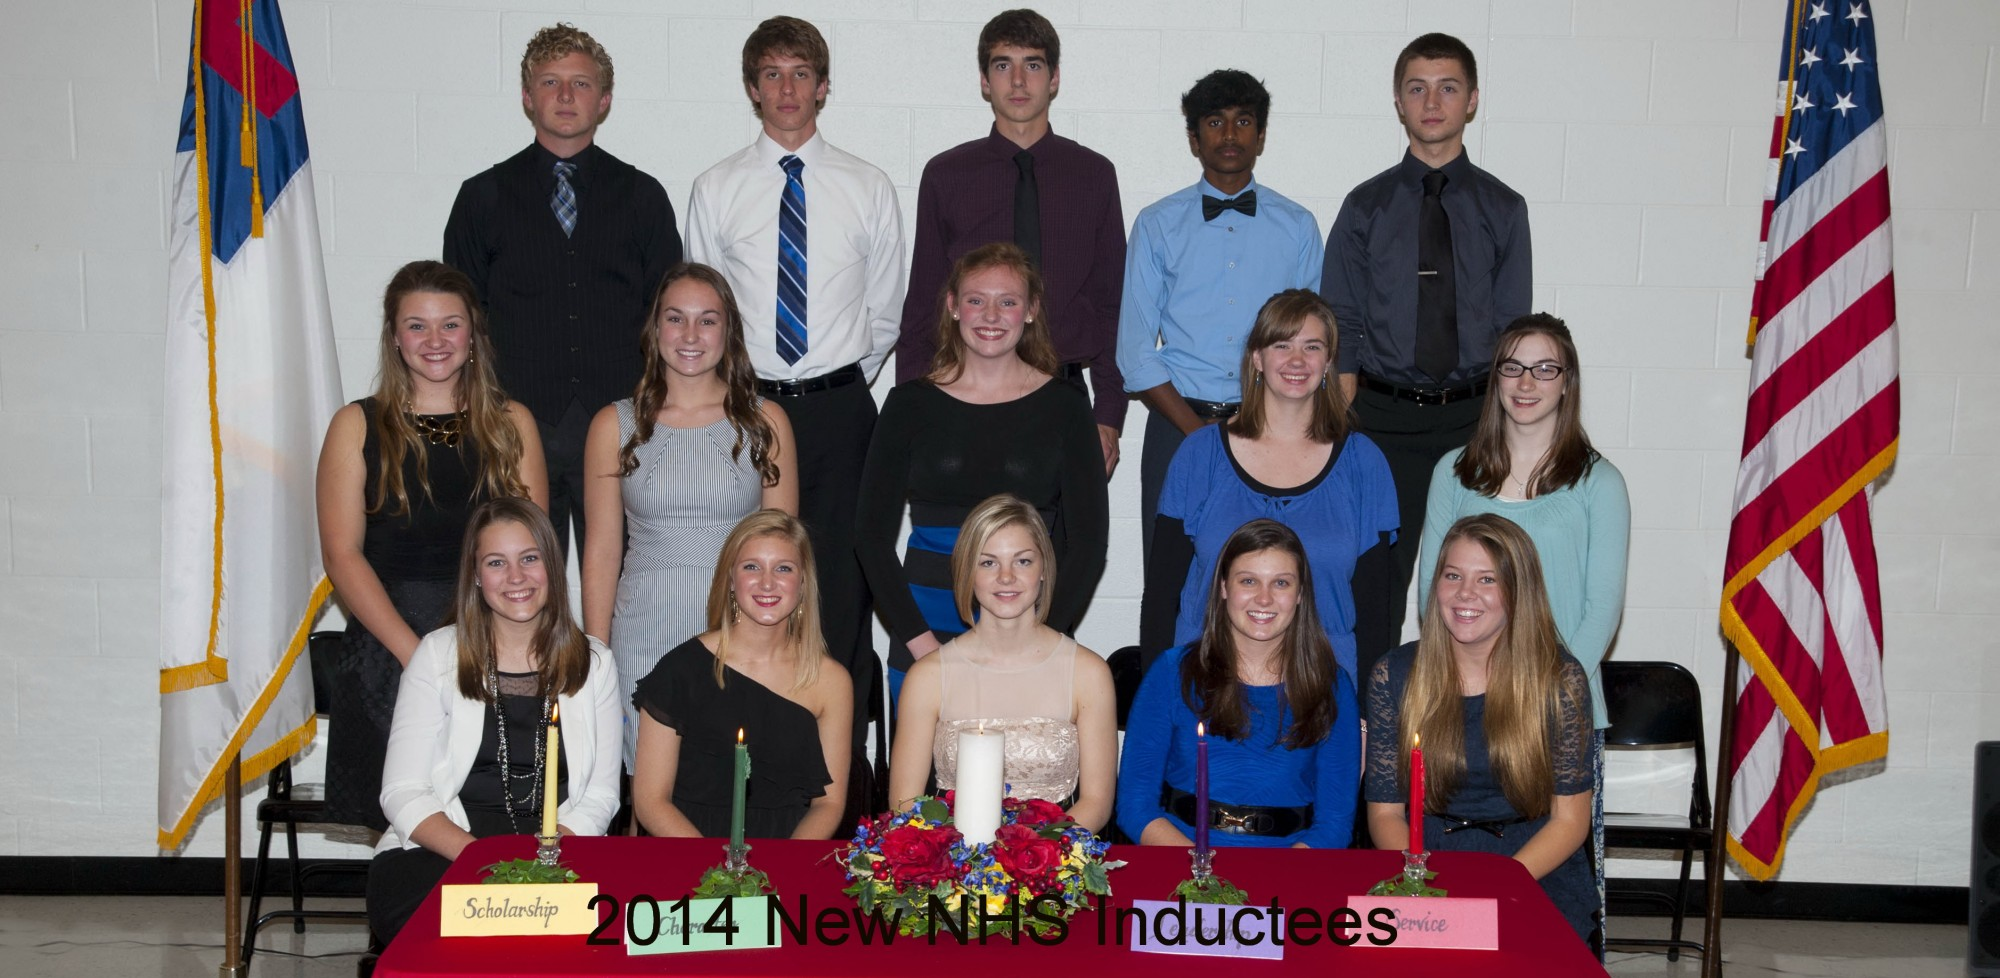 NHS inductees 2014